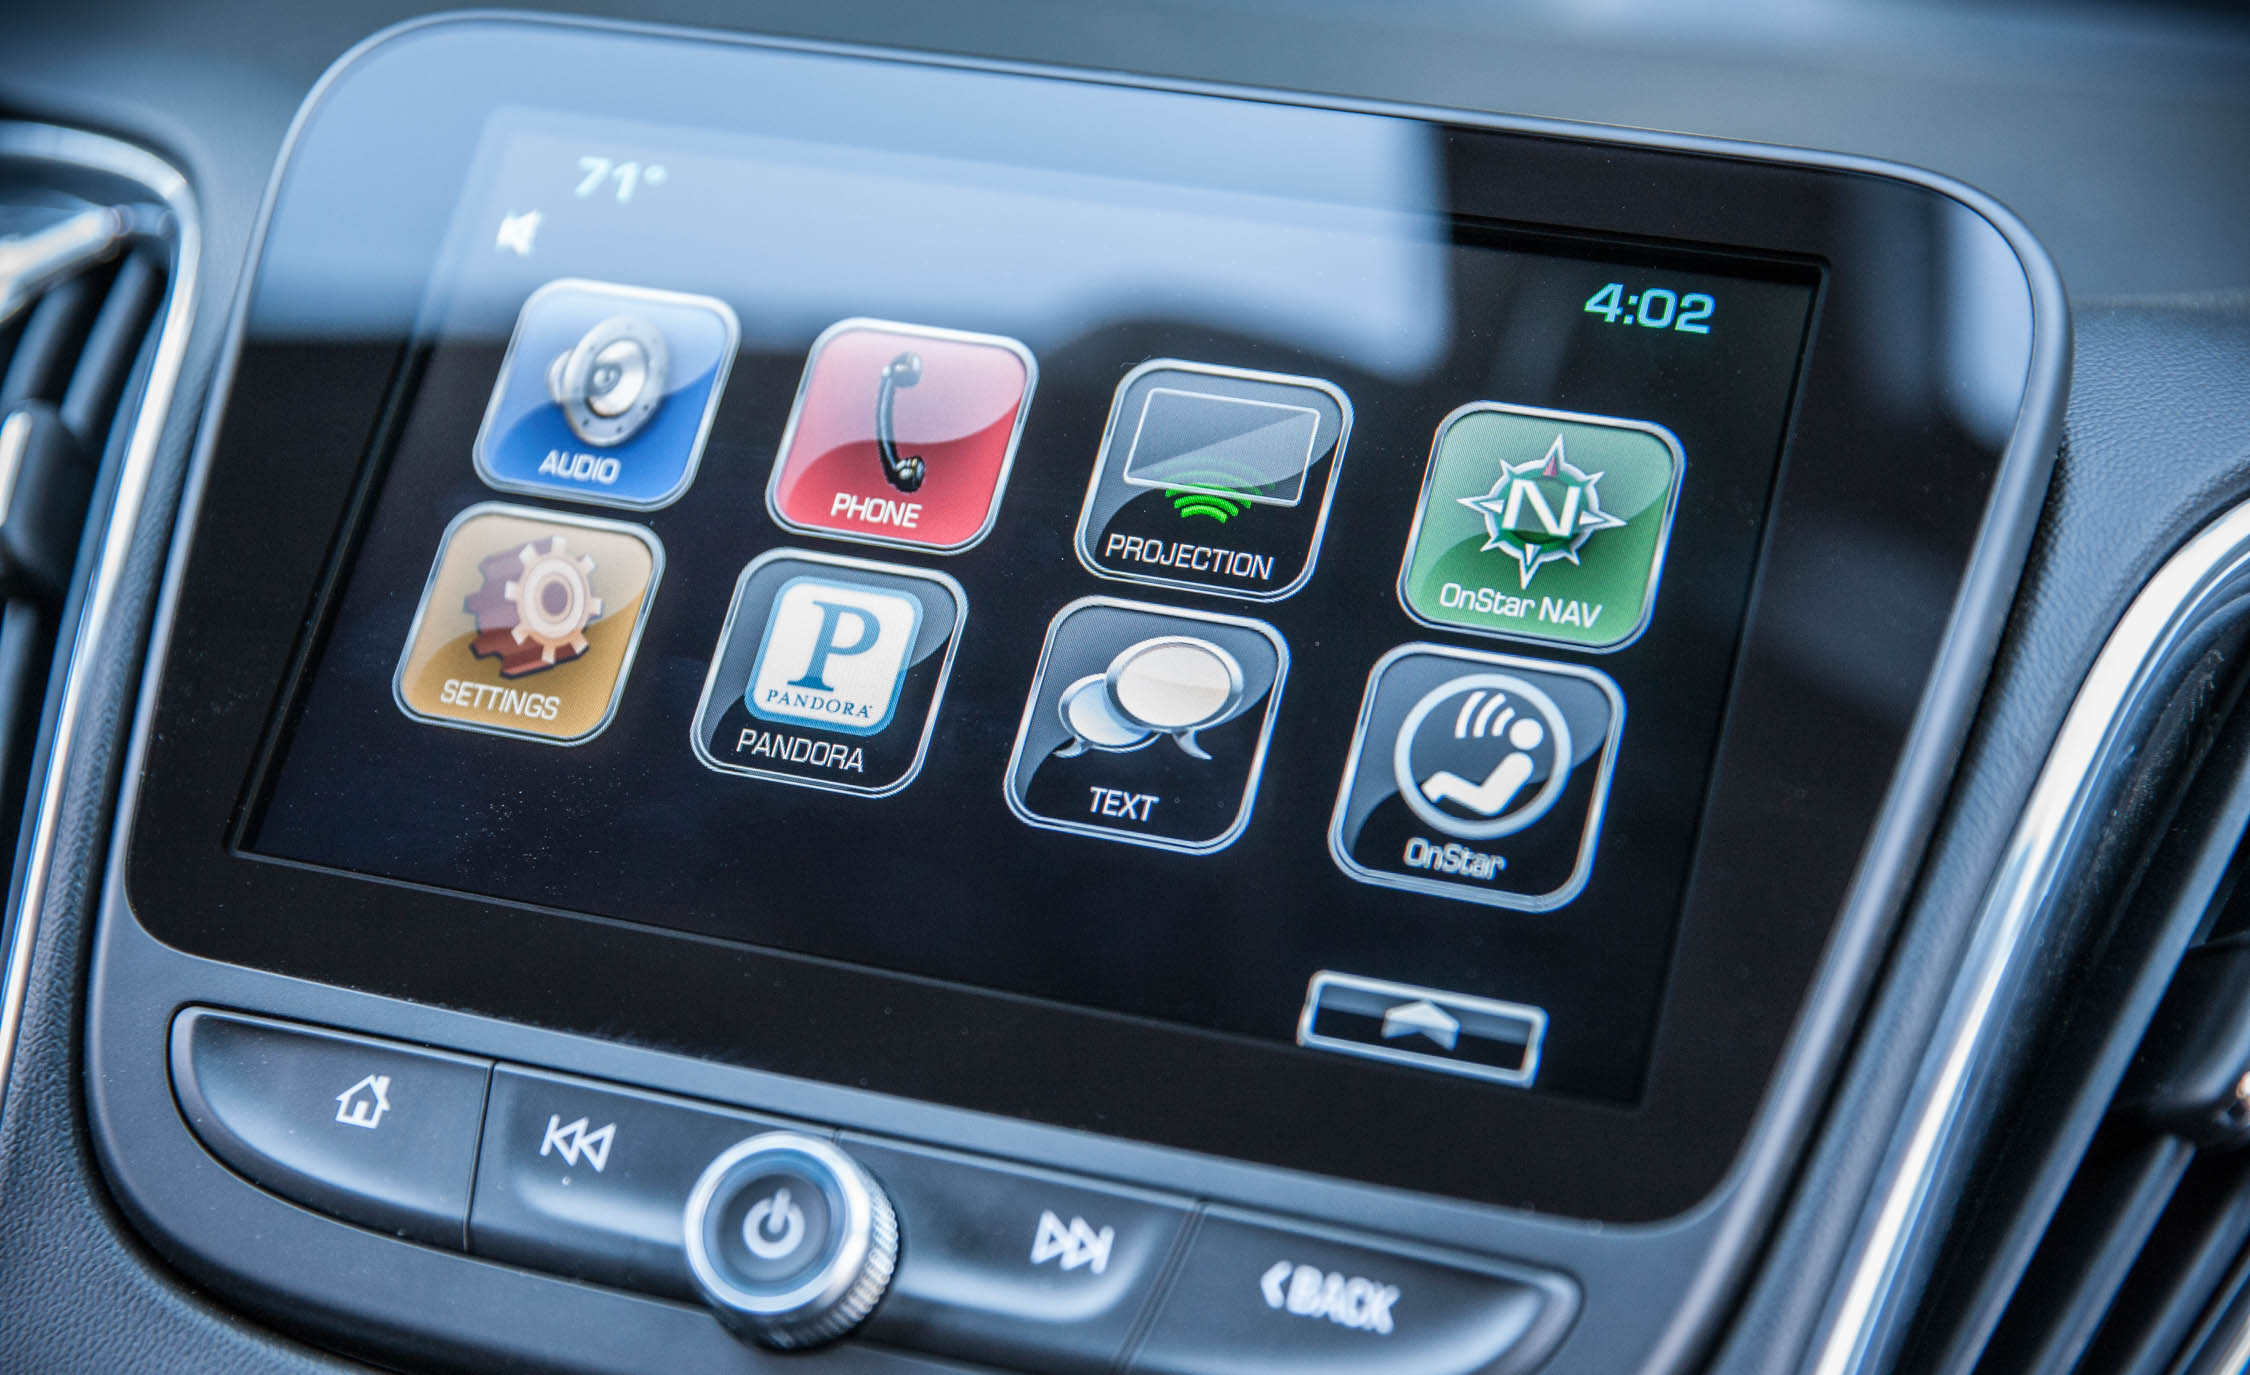 2016 Chevrolet Malibu LT Interior Head Unit